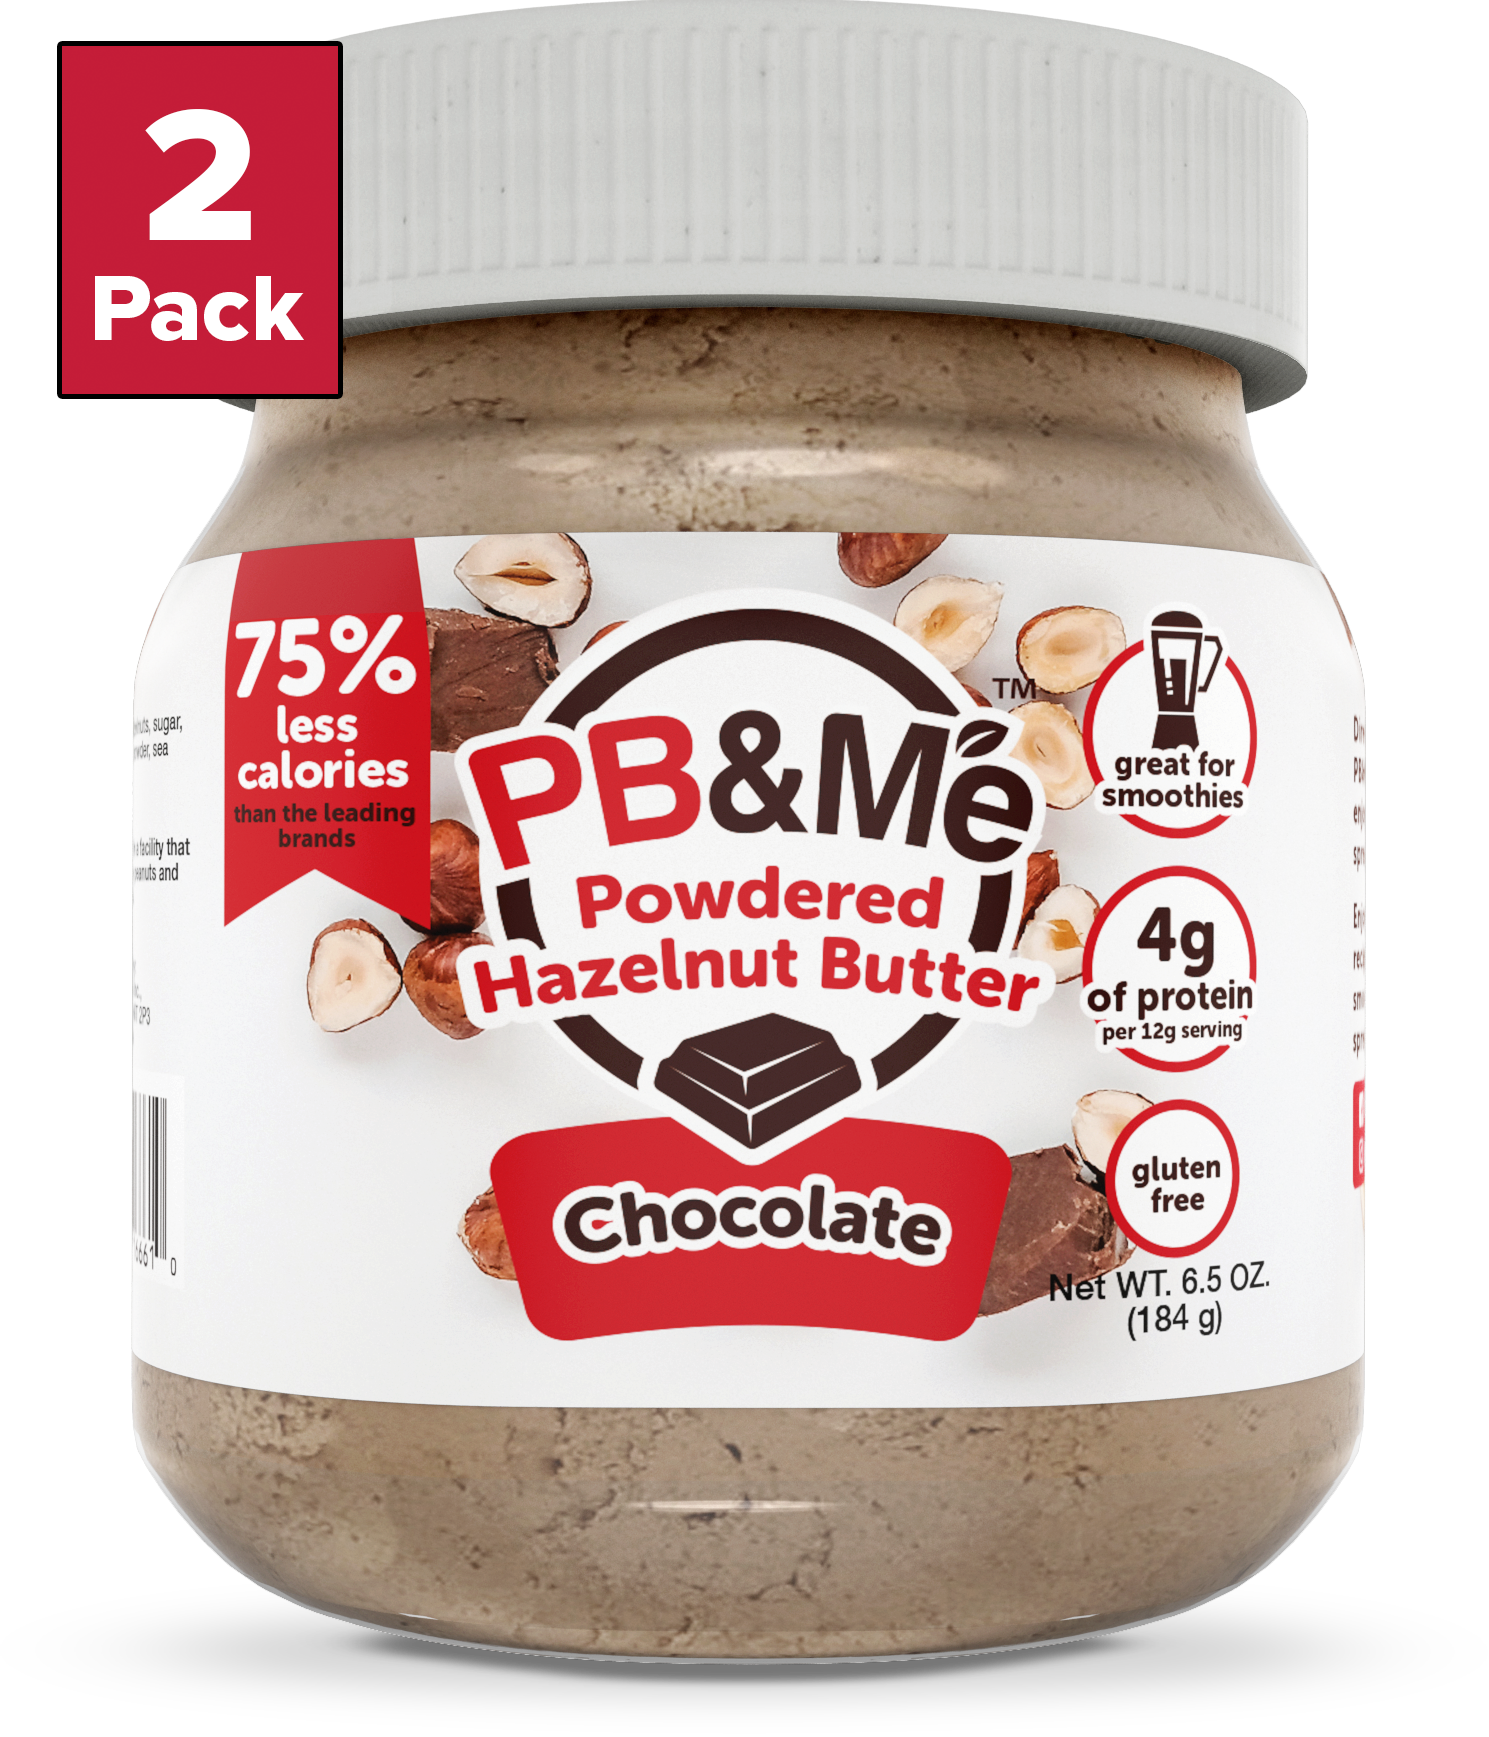 Powdered Hazelnut Butter, Chocolate, 6.5oz